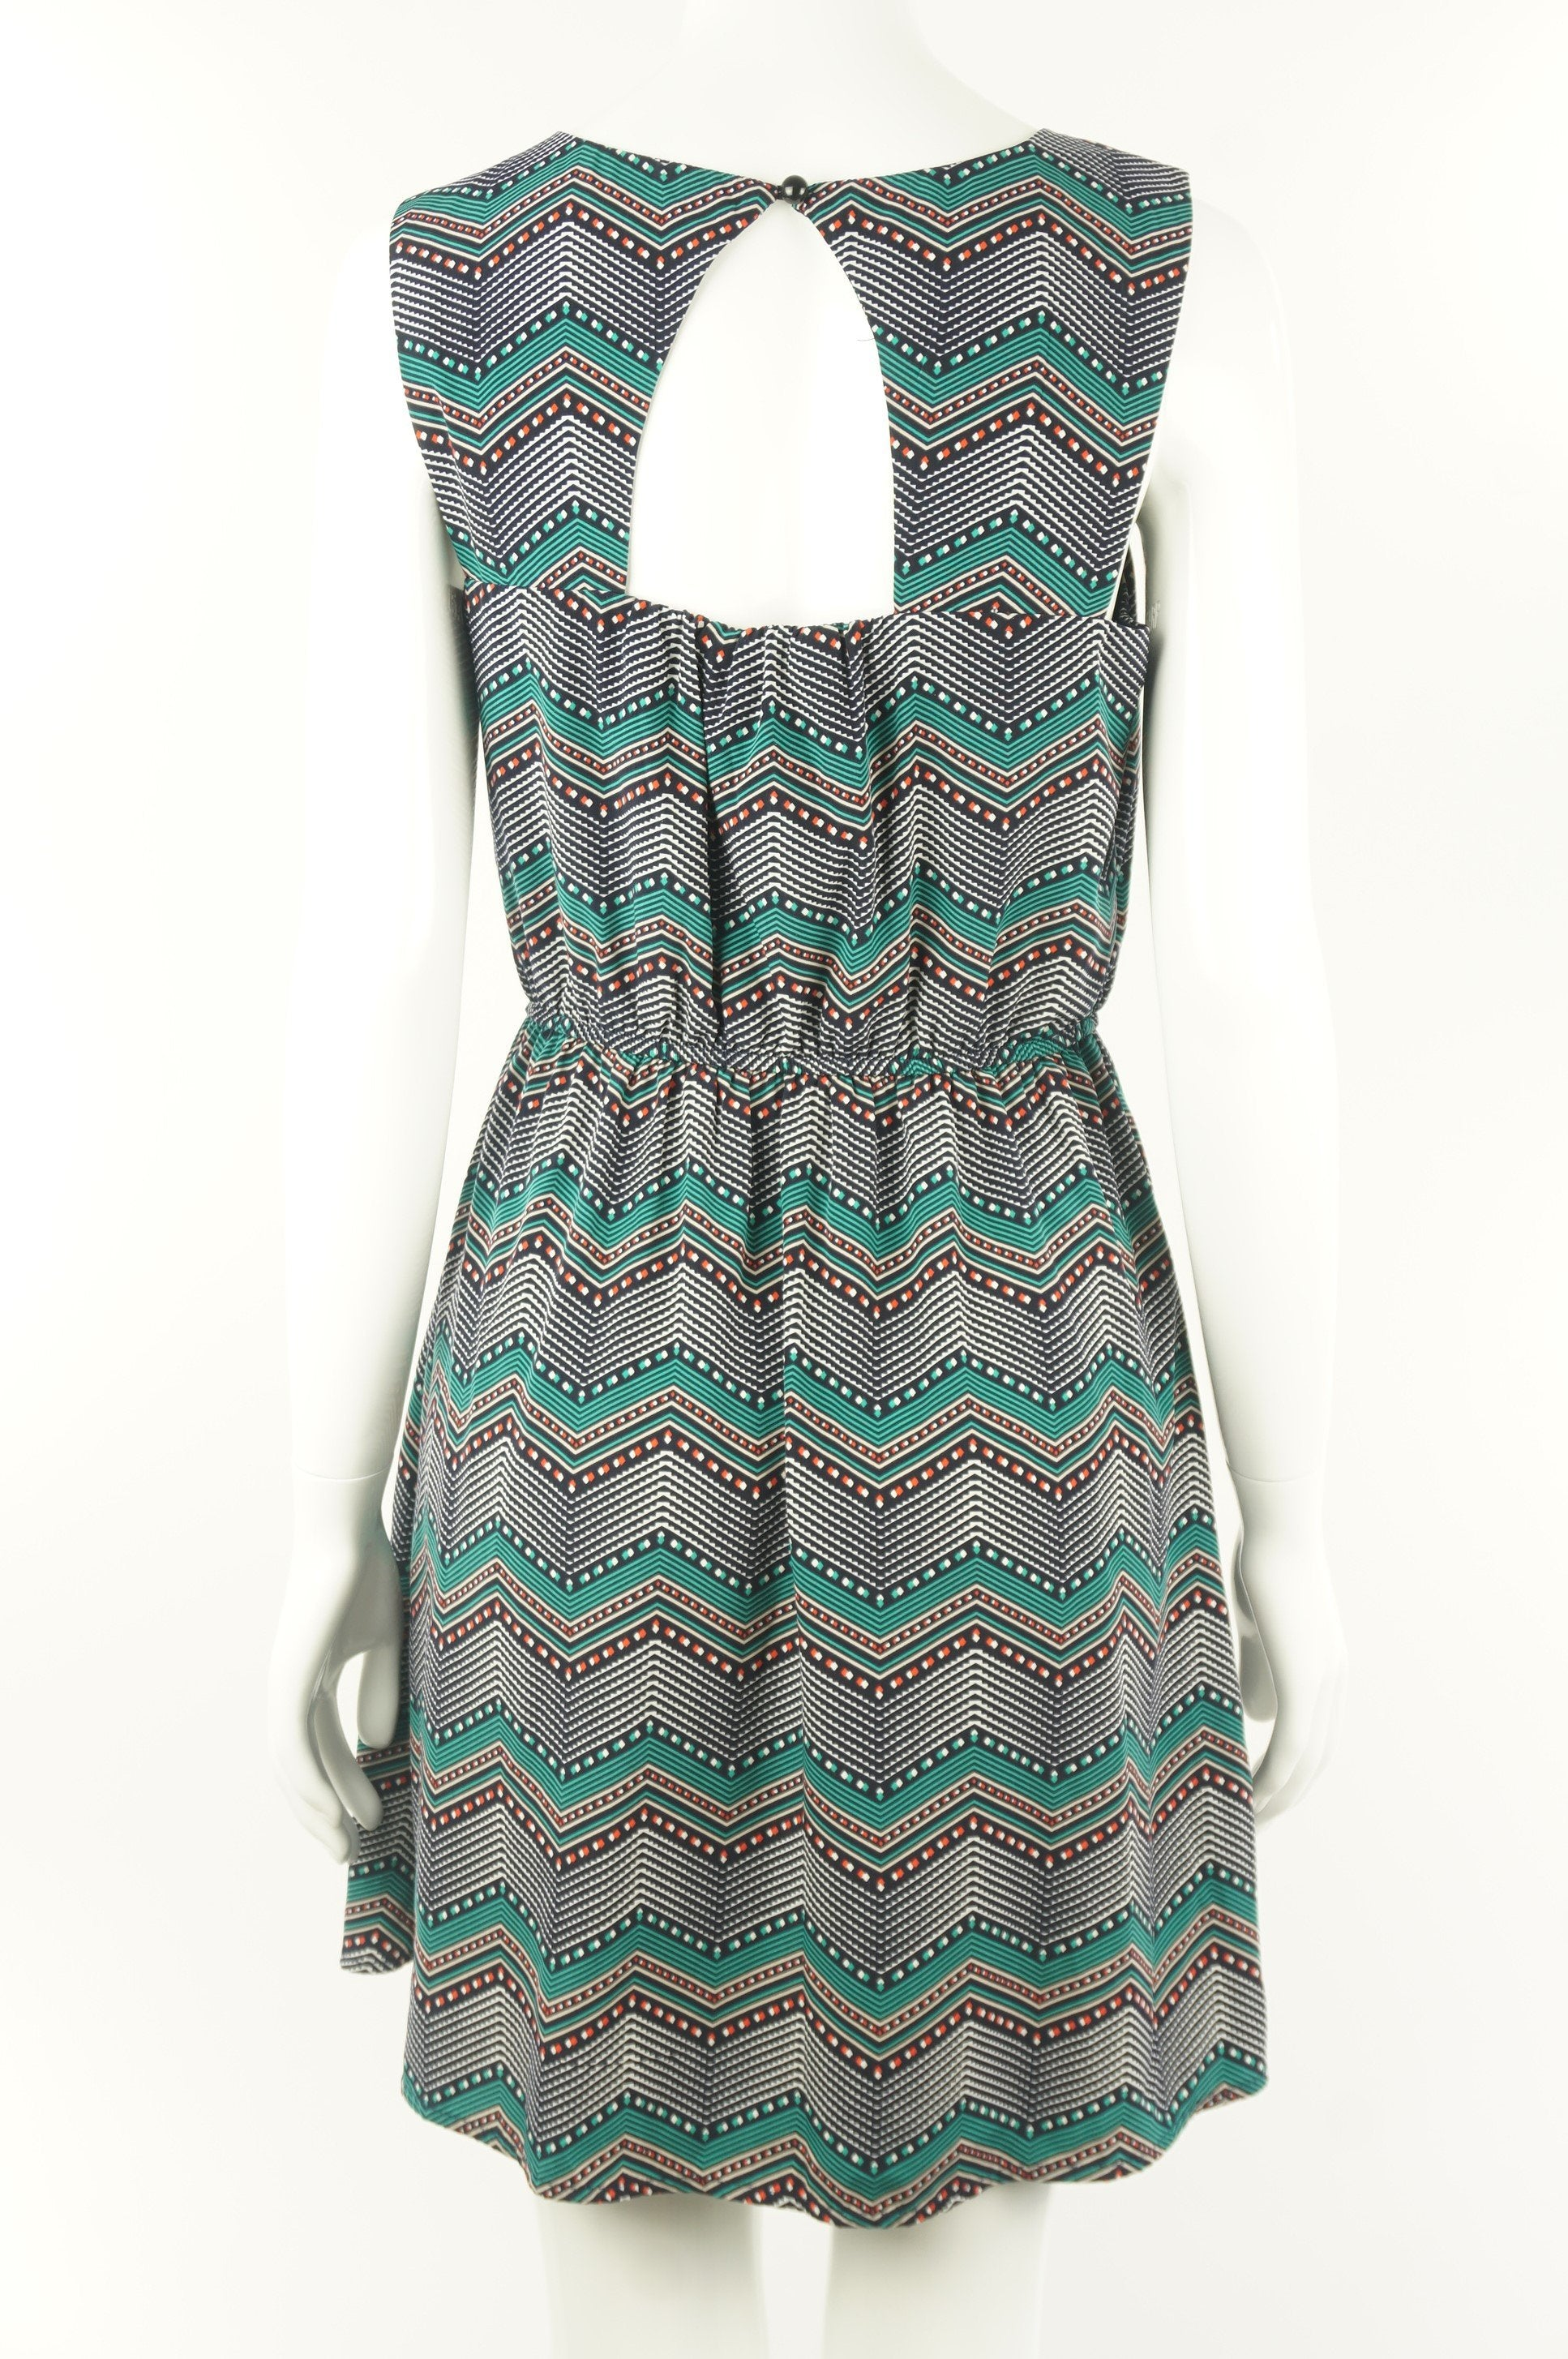 Amy Byer Chevron Midi Dress, Cute chevron pattern sleeveless dress with cutout design on back.  For the vibrant you and a vibrant summer day., Green, Blue, 100% polyester, women's Dresses & Skirts, women's Green, Blue Dresses & Skirts, Amy Byer women's Dresses & Skirts, women's midi dress, women's sleeveless dress